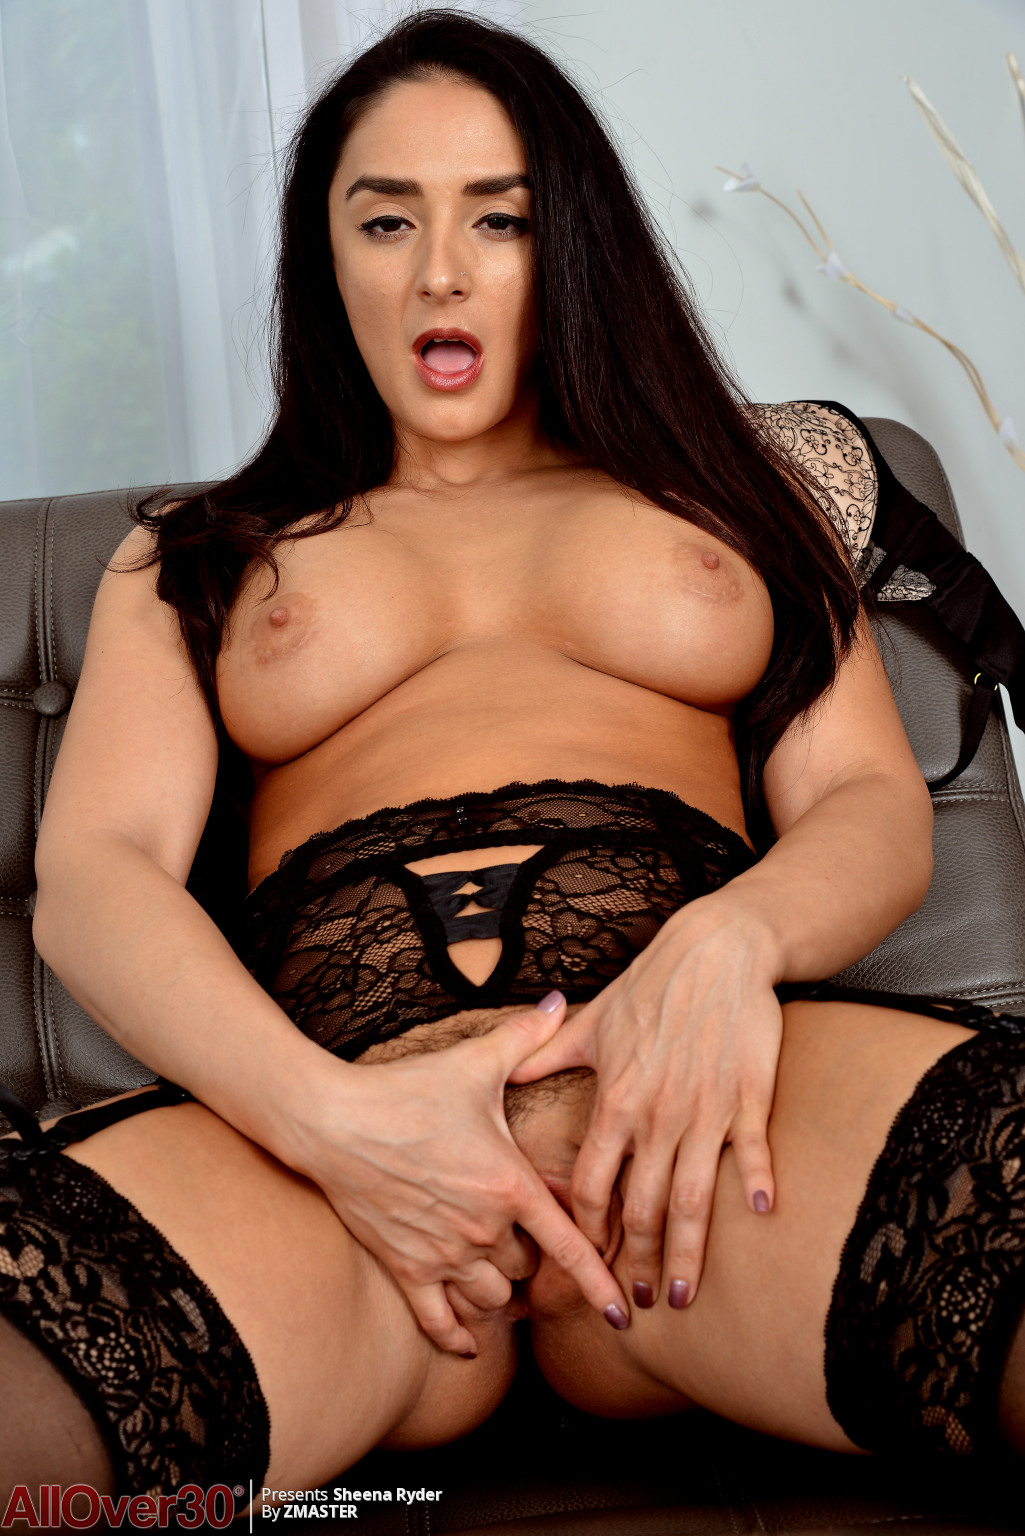 big-tits-beauty-sheena-ryder-14